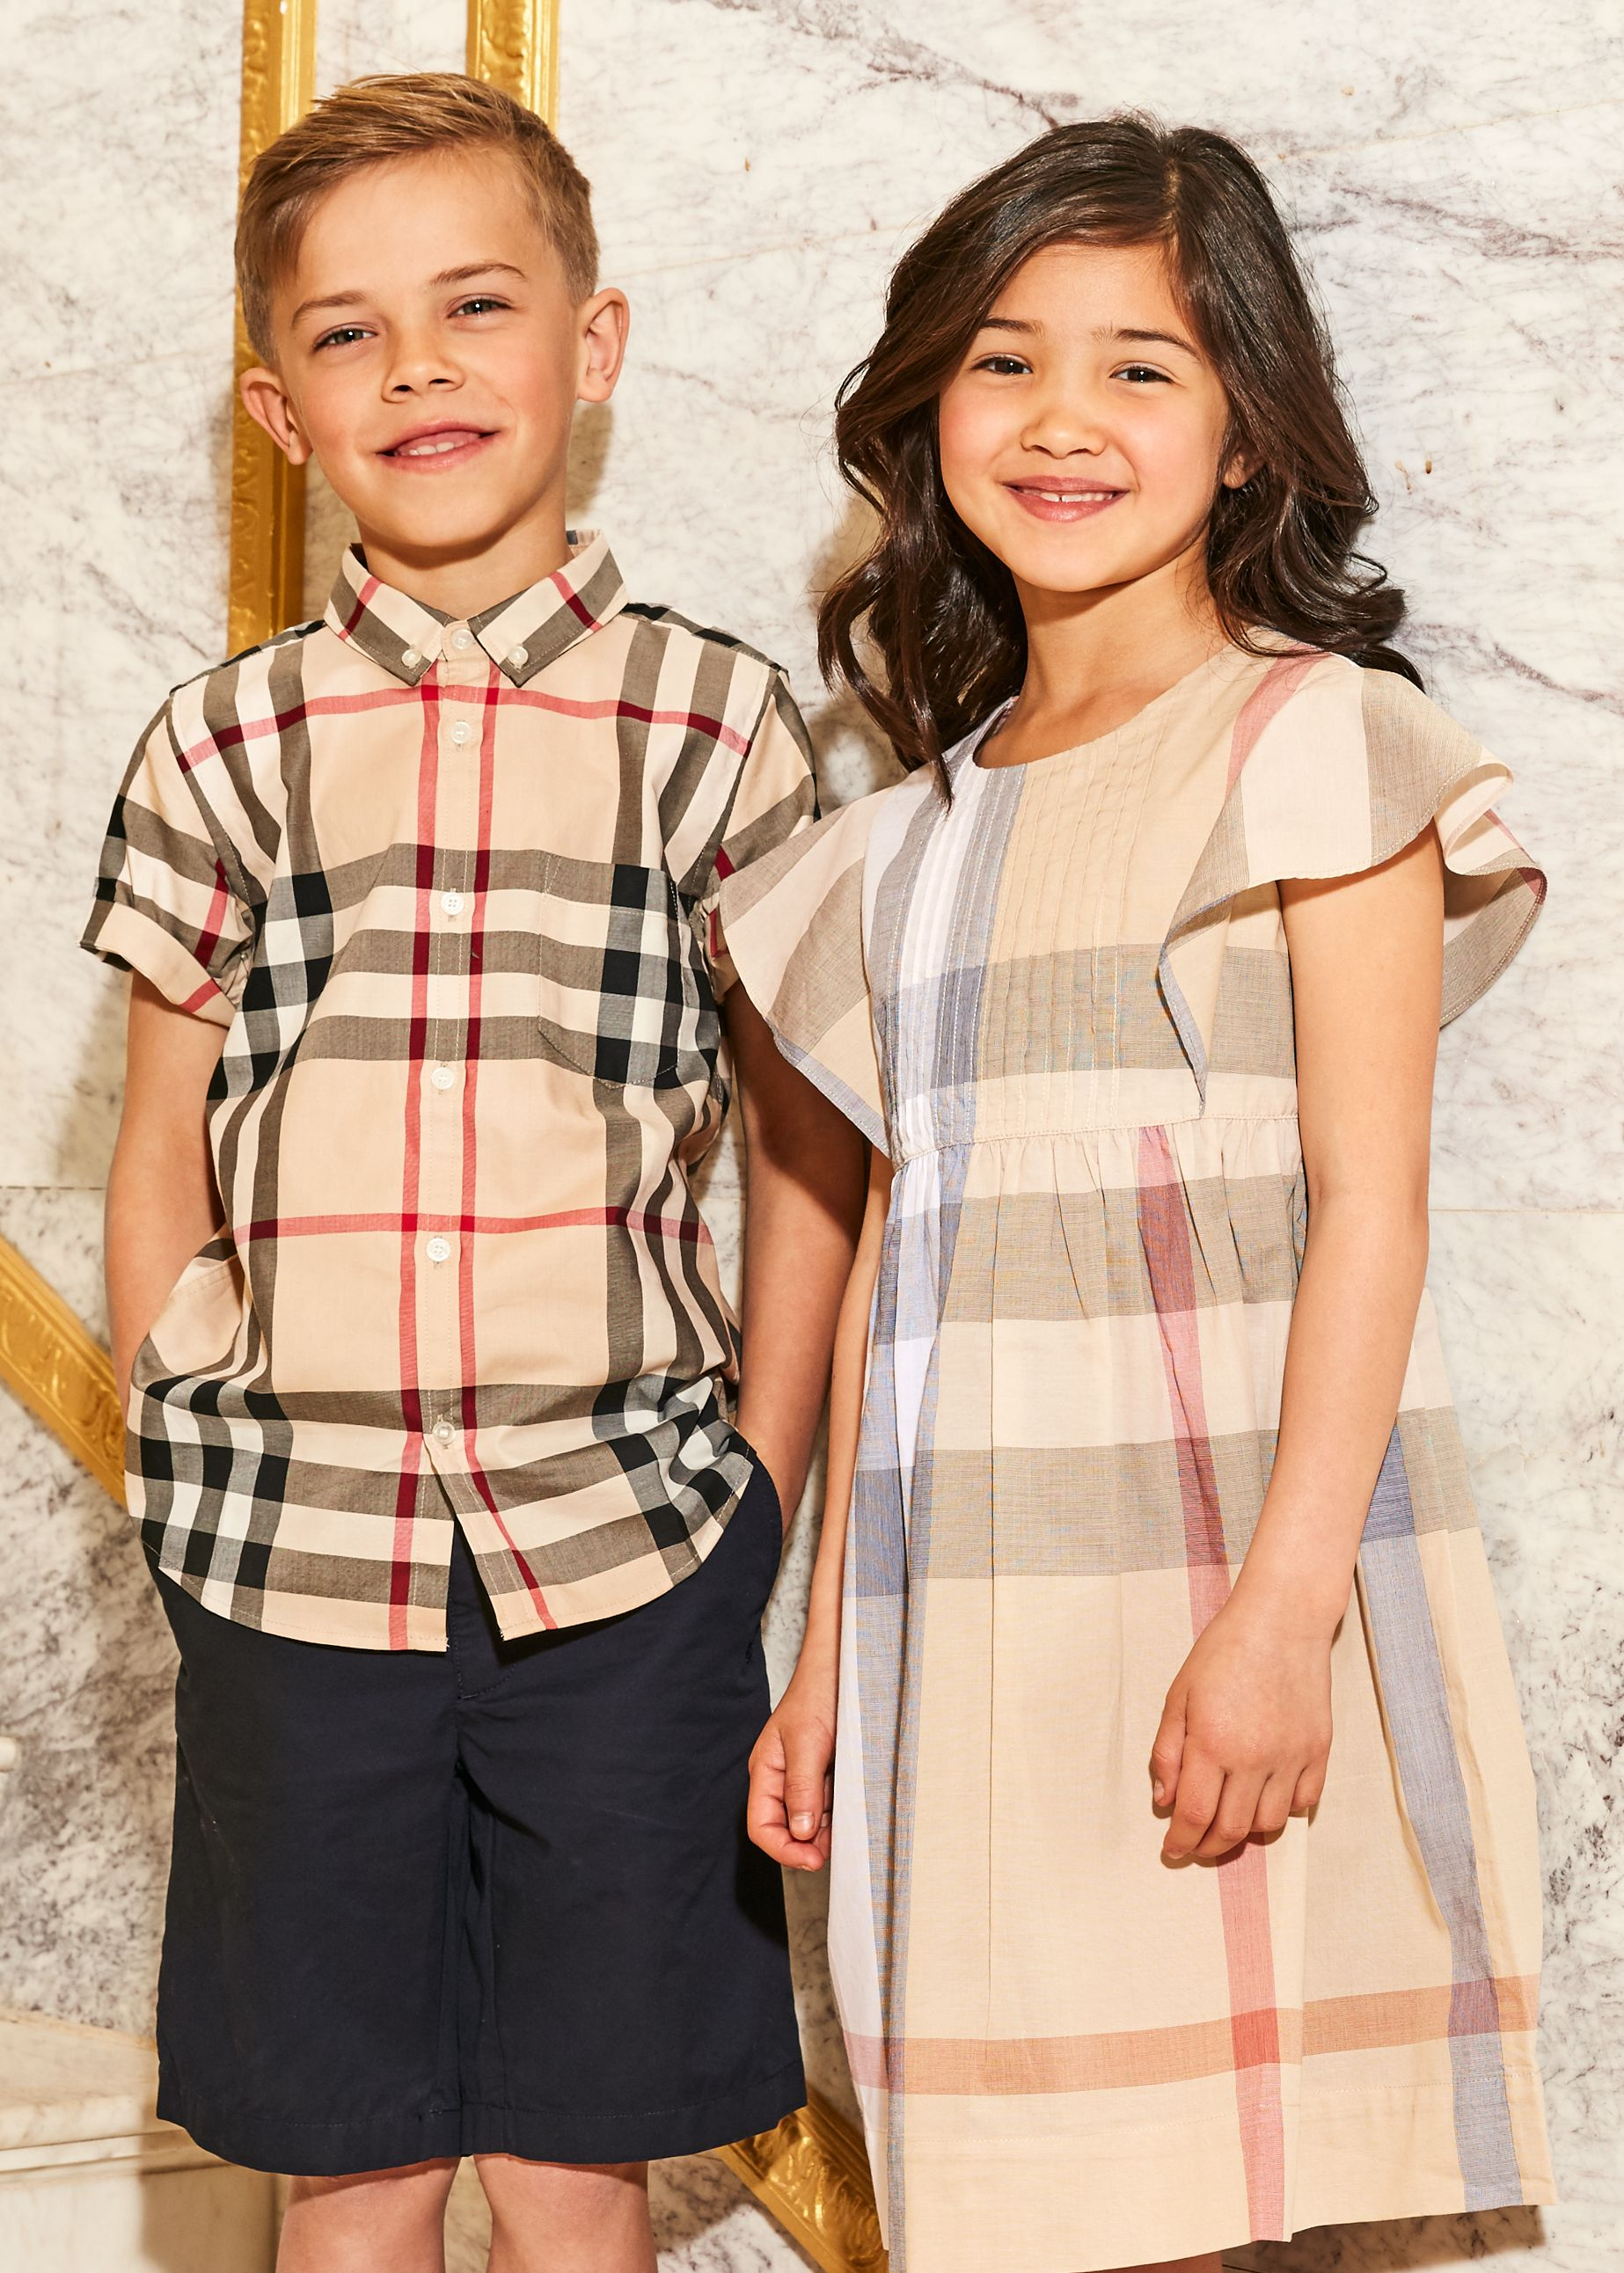 adf08f35c Celebrate Eid al-Fitr in style with our selection of luxury clothing for  boys, girls and baby